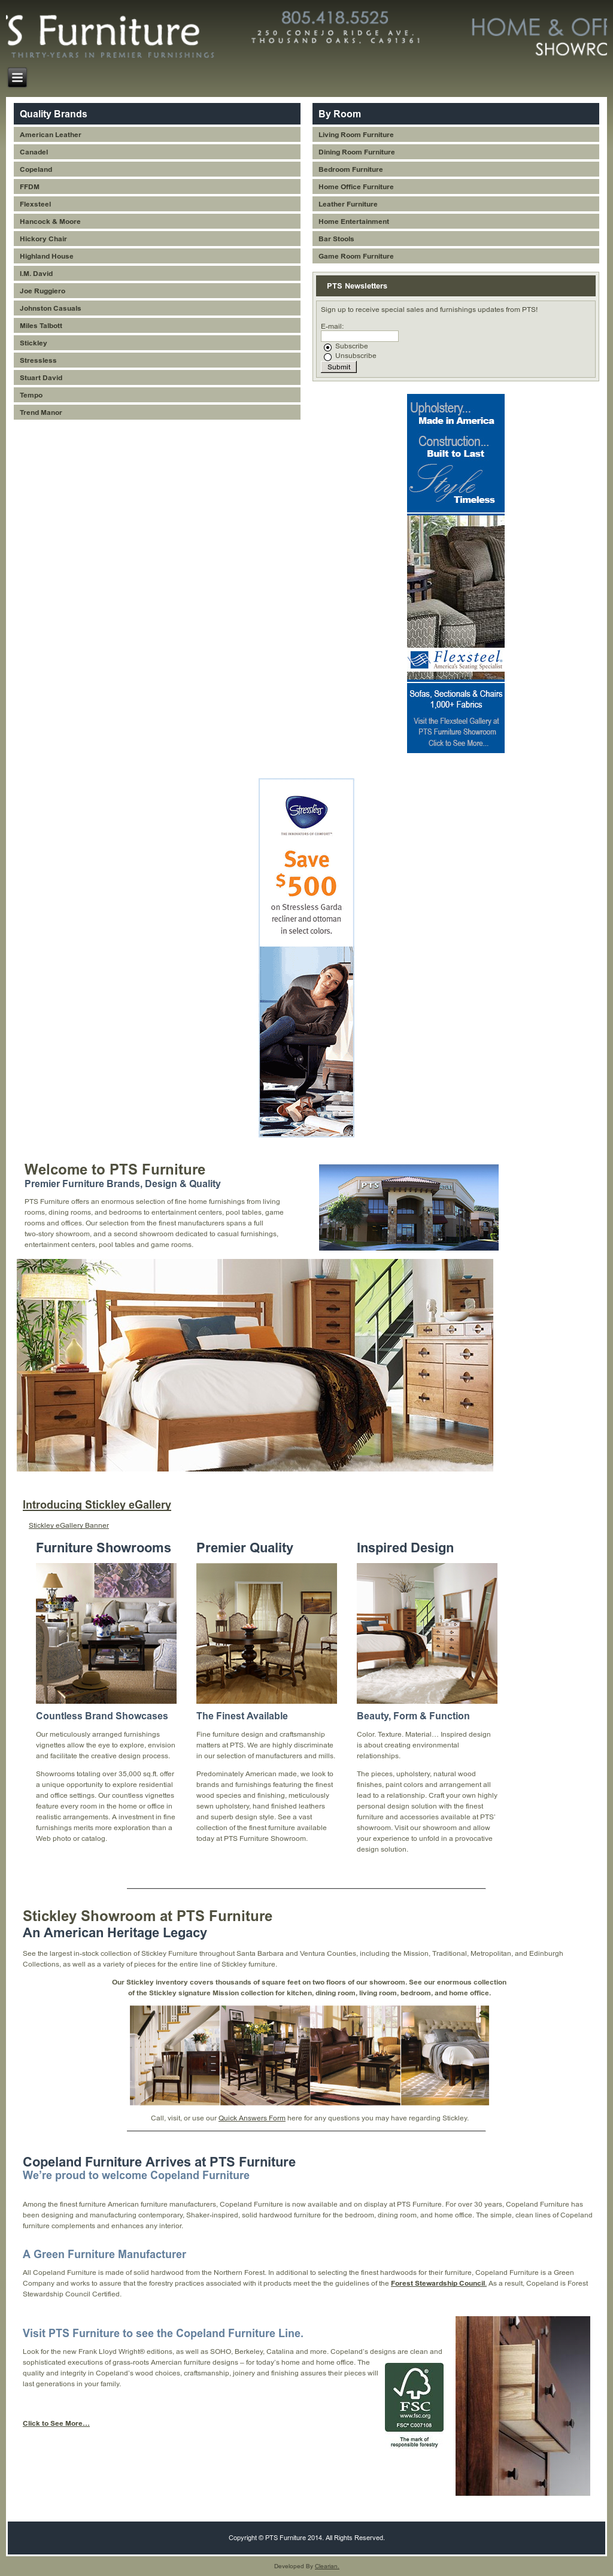 Pts Furniture Thousand Oaks Ca Design Website History Home Office Compeors Revenue And Employees